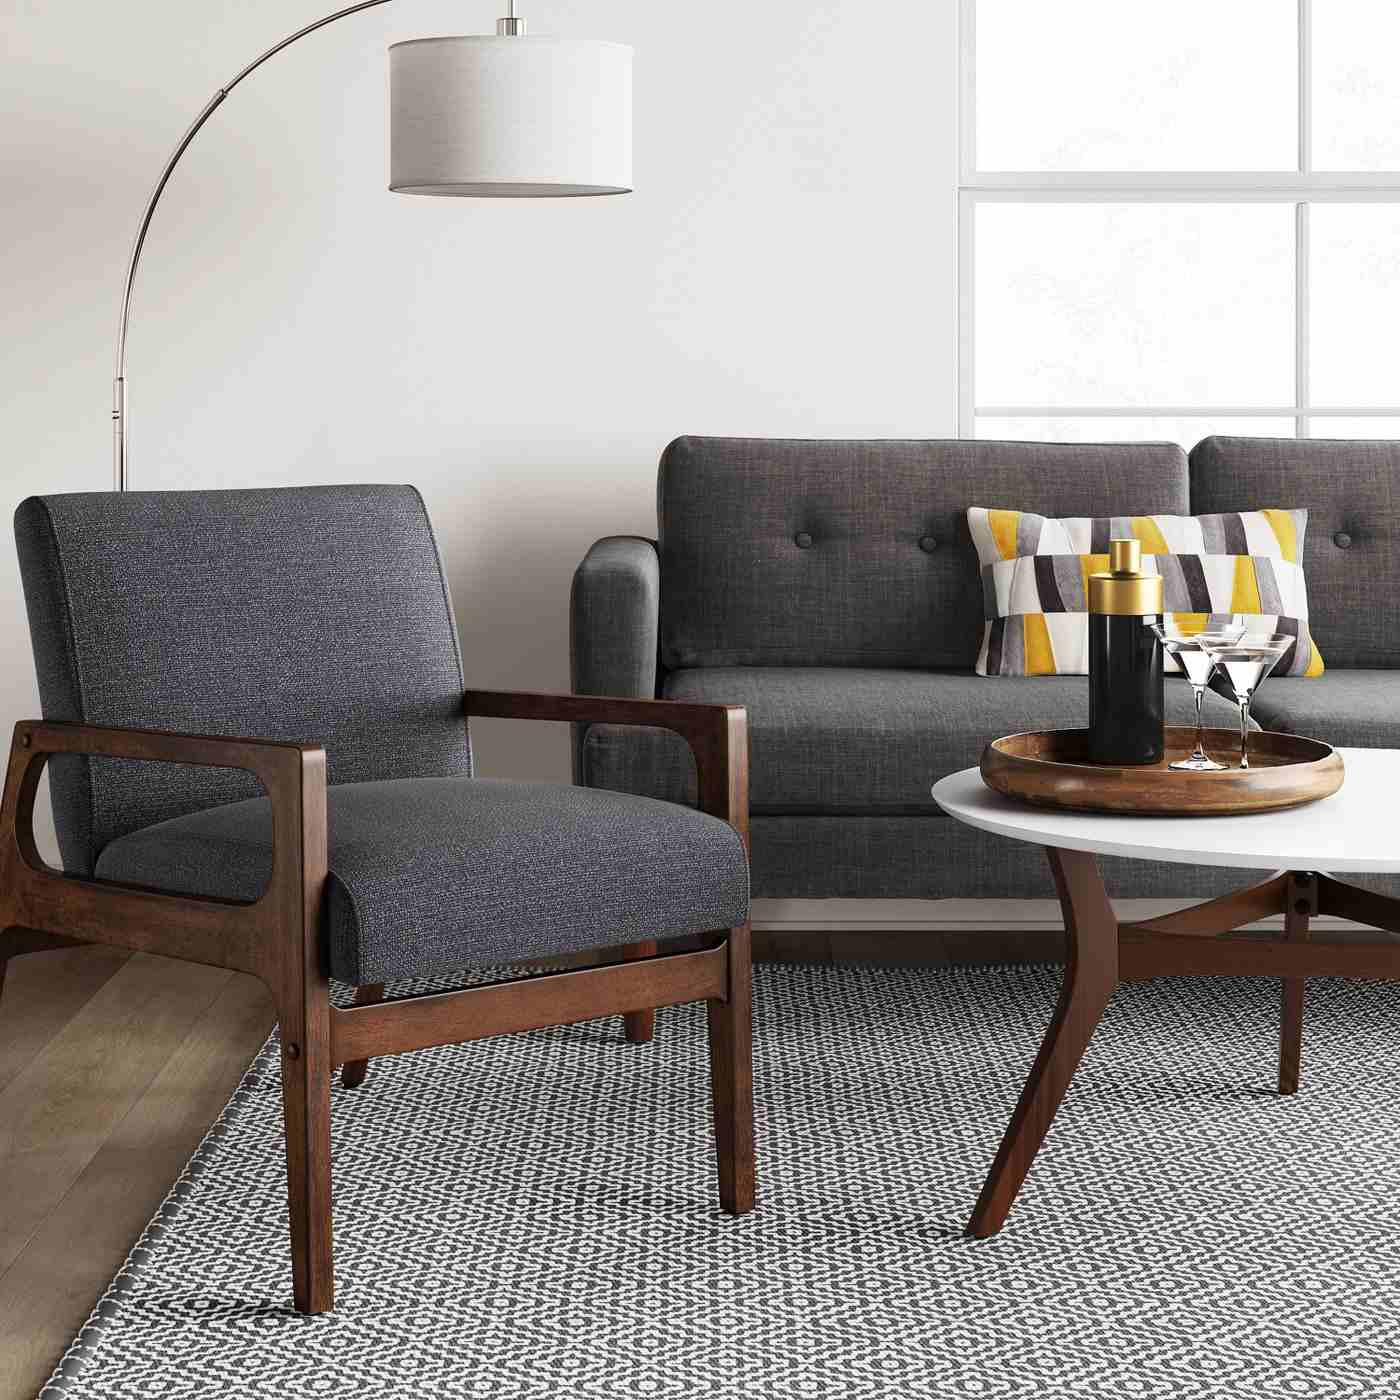 Best Furniture Buy: The Best Places To Buy Furniture In 2019